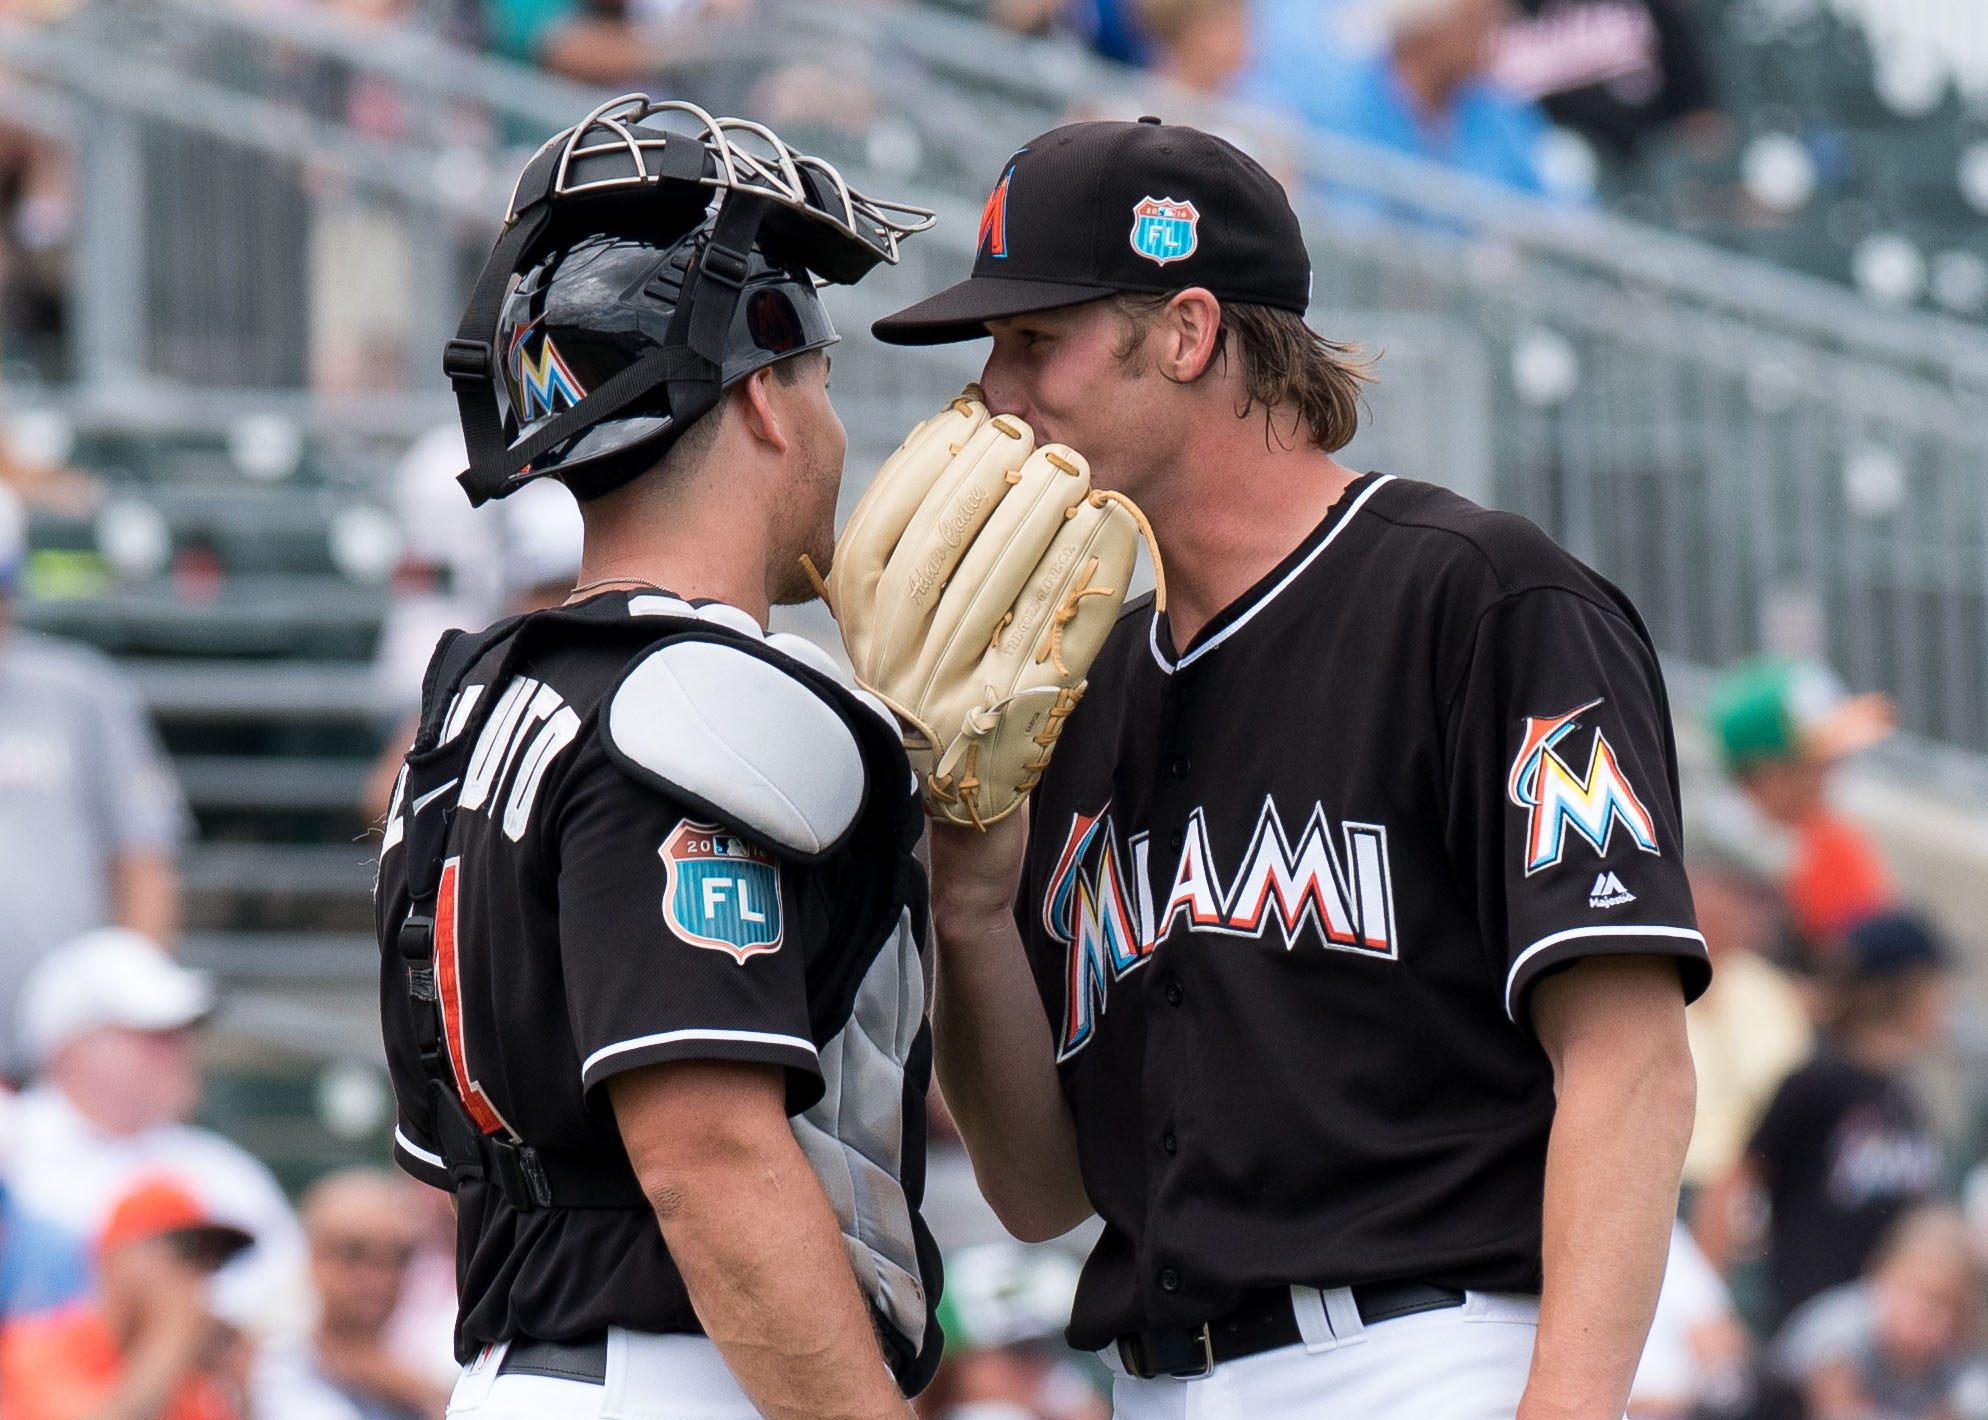 Mar 24, 2016; Jupiter, FL, USA; Miami Marlins starting pitcher Adam Conley (right) talks with Marlins catcher J.T. Realmuto (left) near the pitchers mound during a spring training game against the Minnesota Twins at Roger Dean Stadium. Mandatory Credit: Steve Mitchell-USA TODAY Sports